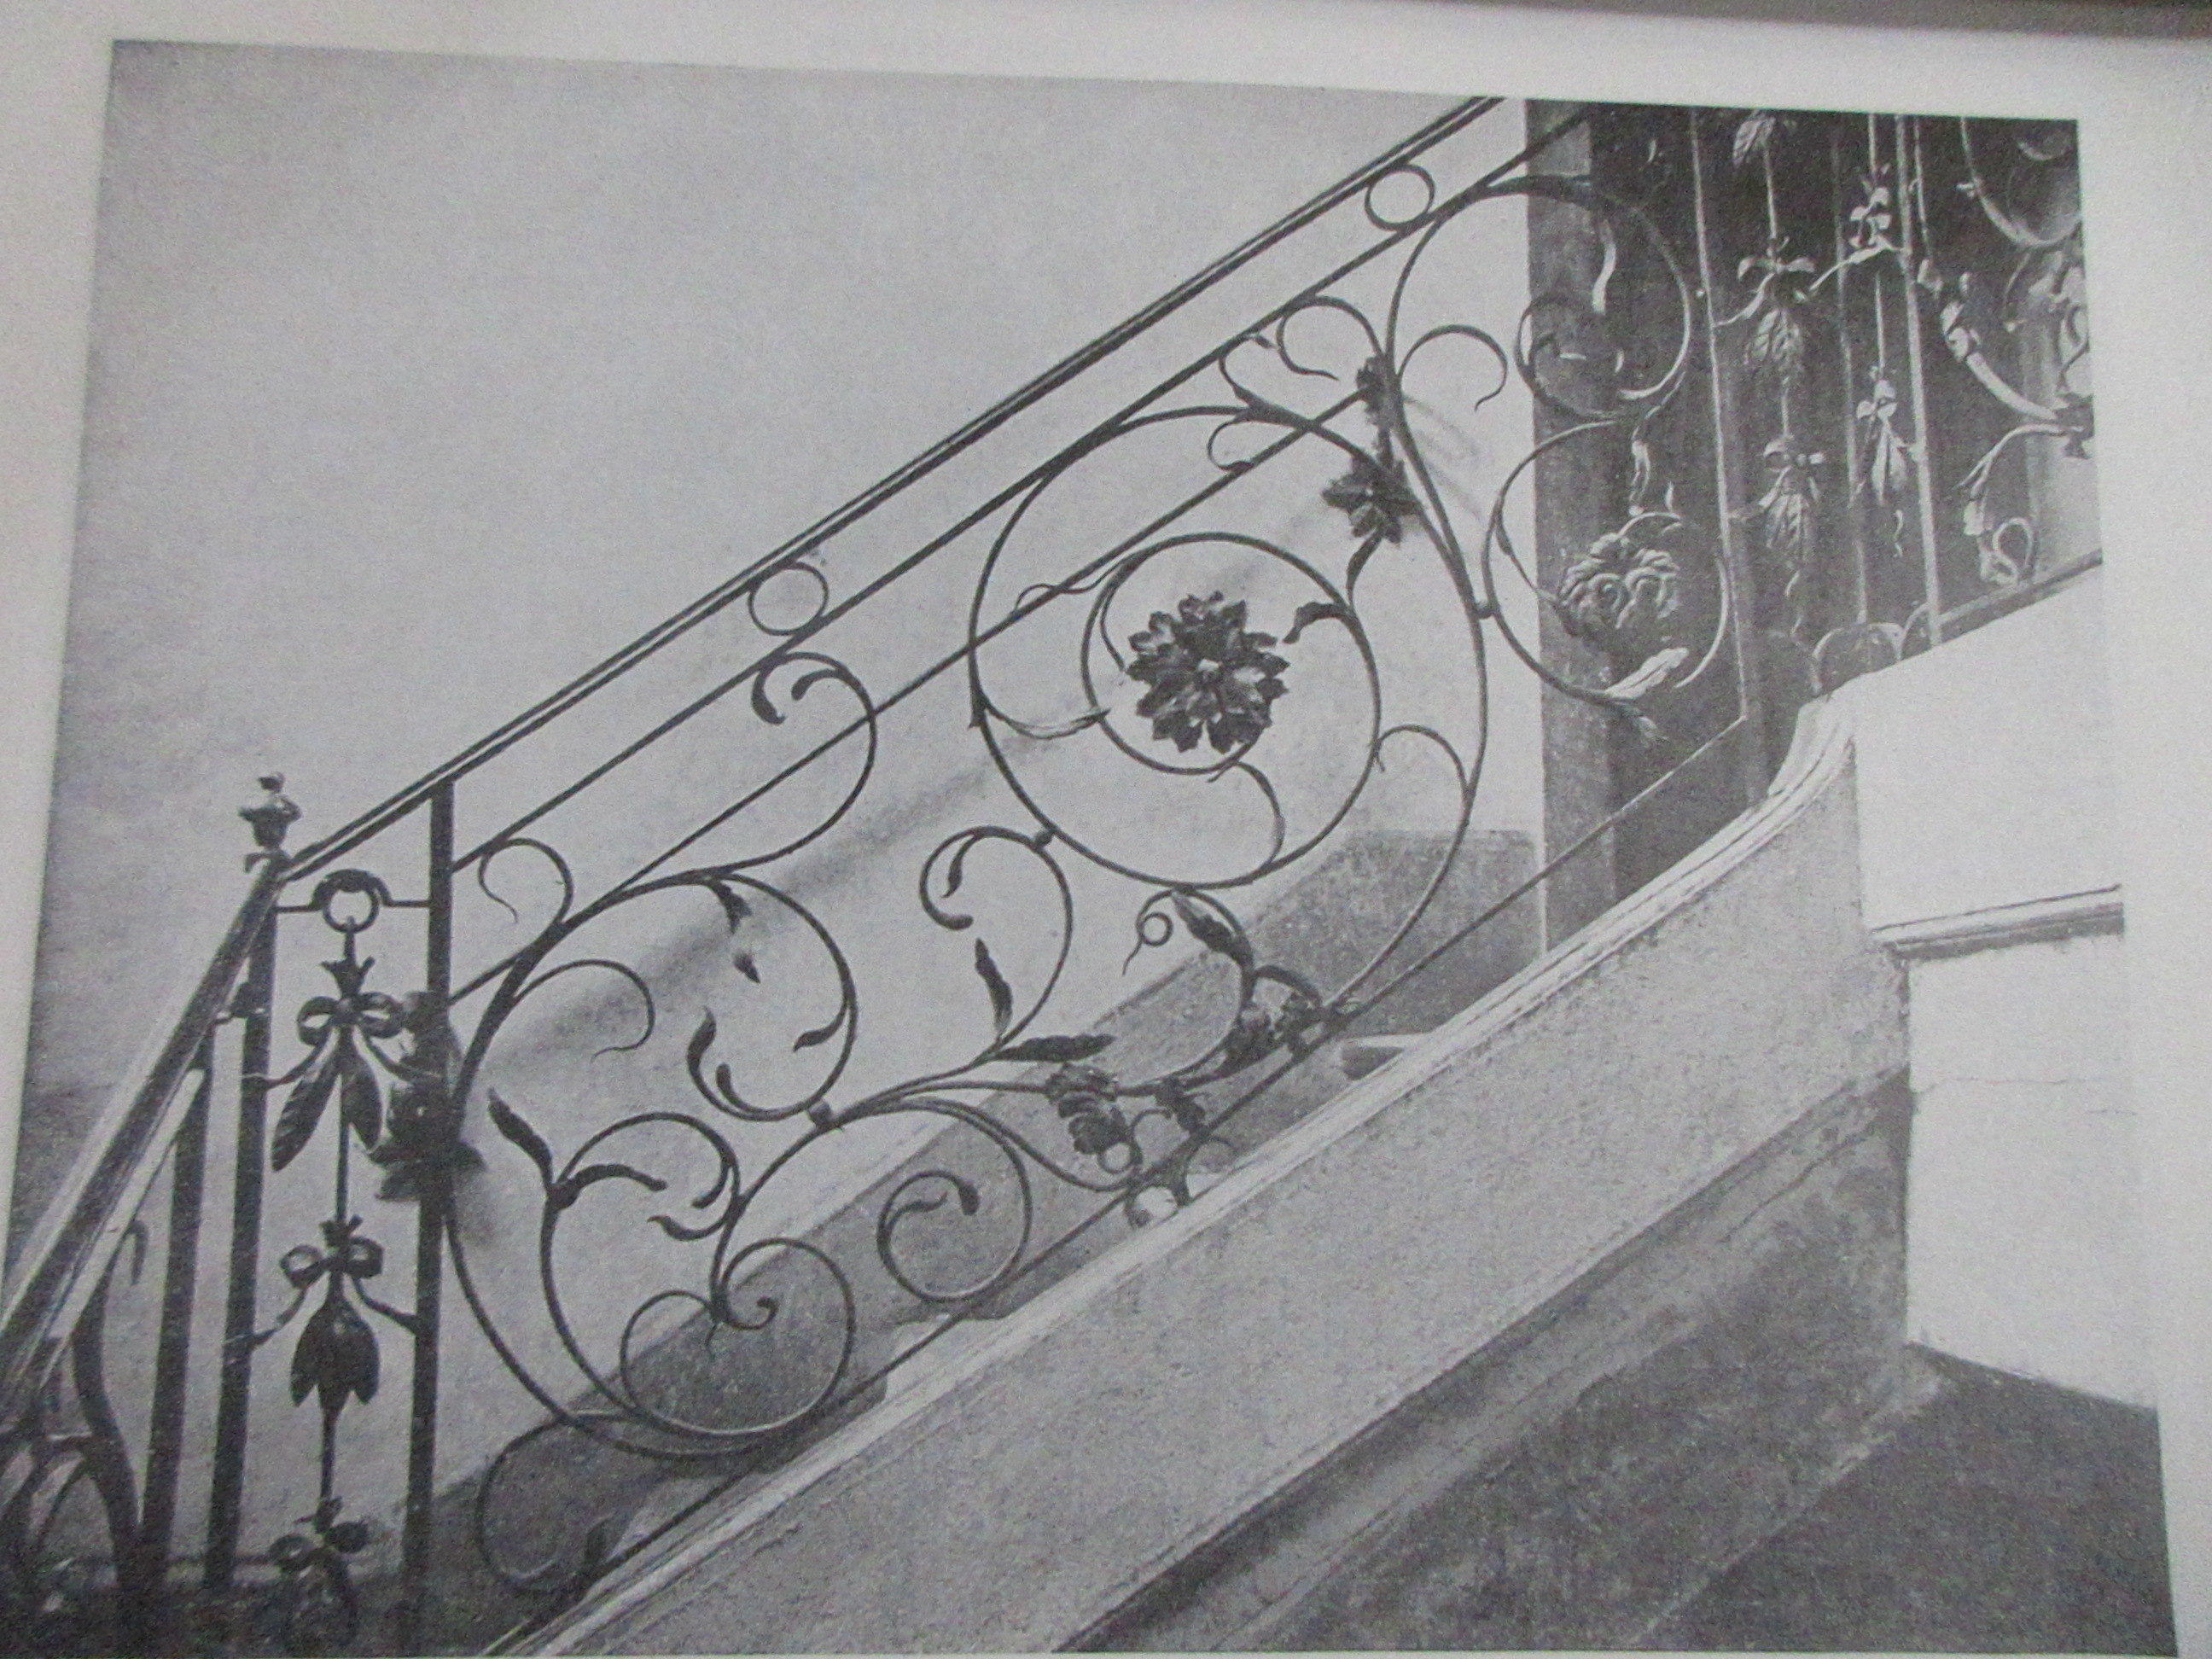 Hench 19 Century Wrought Iron Stair Railing Wrought Iron Balustrade